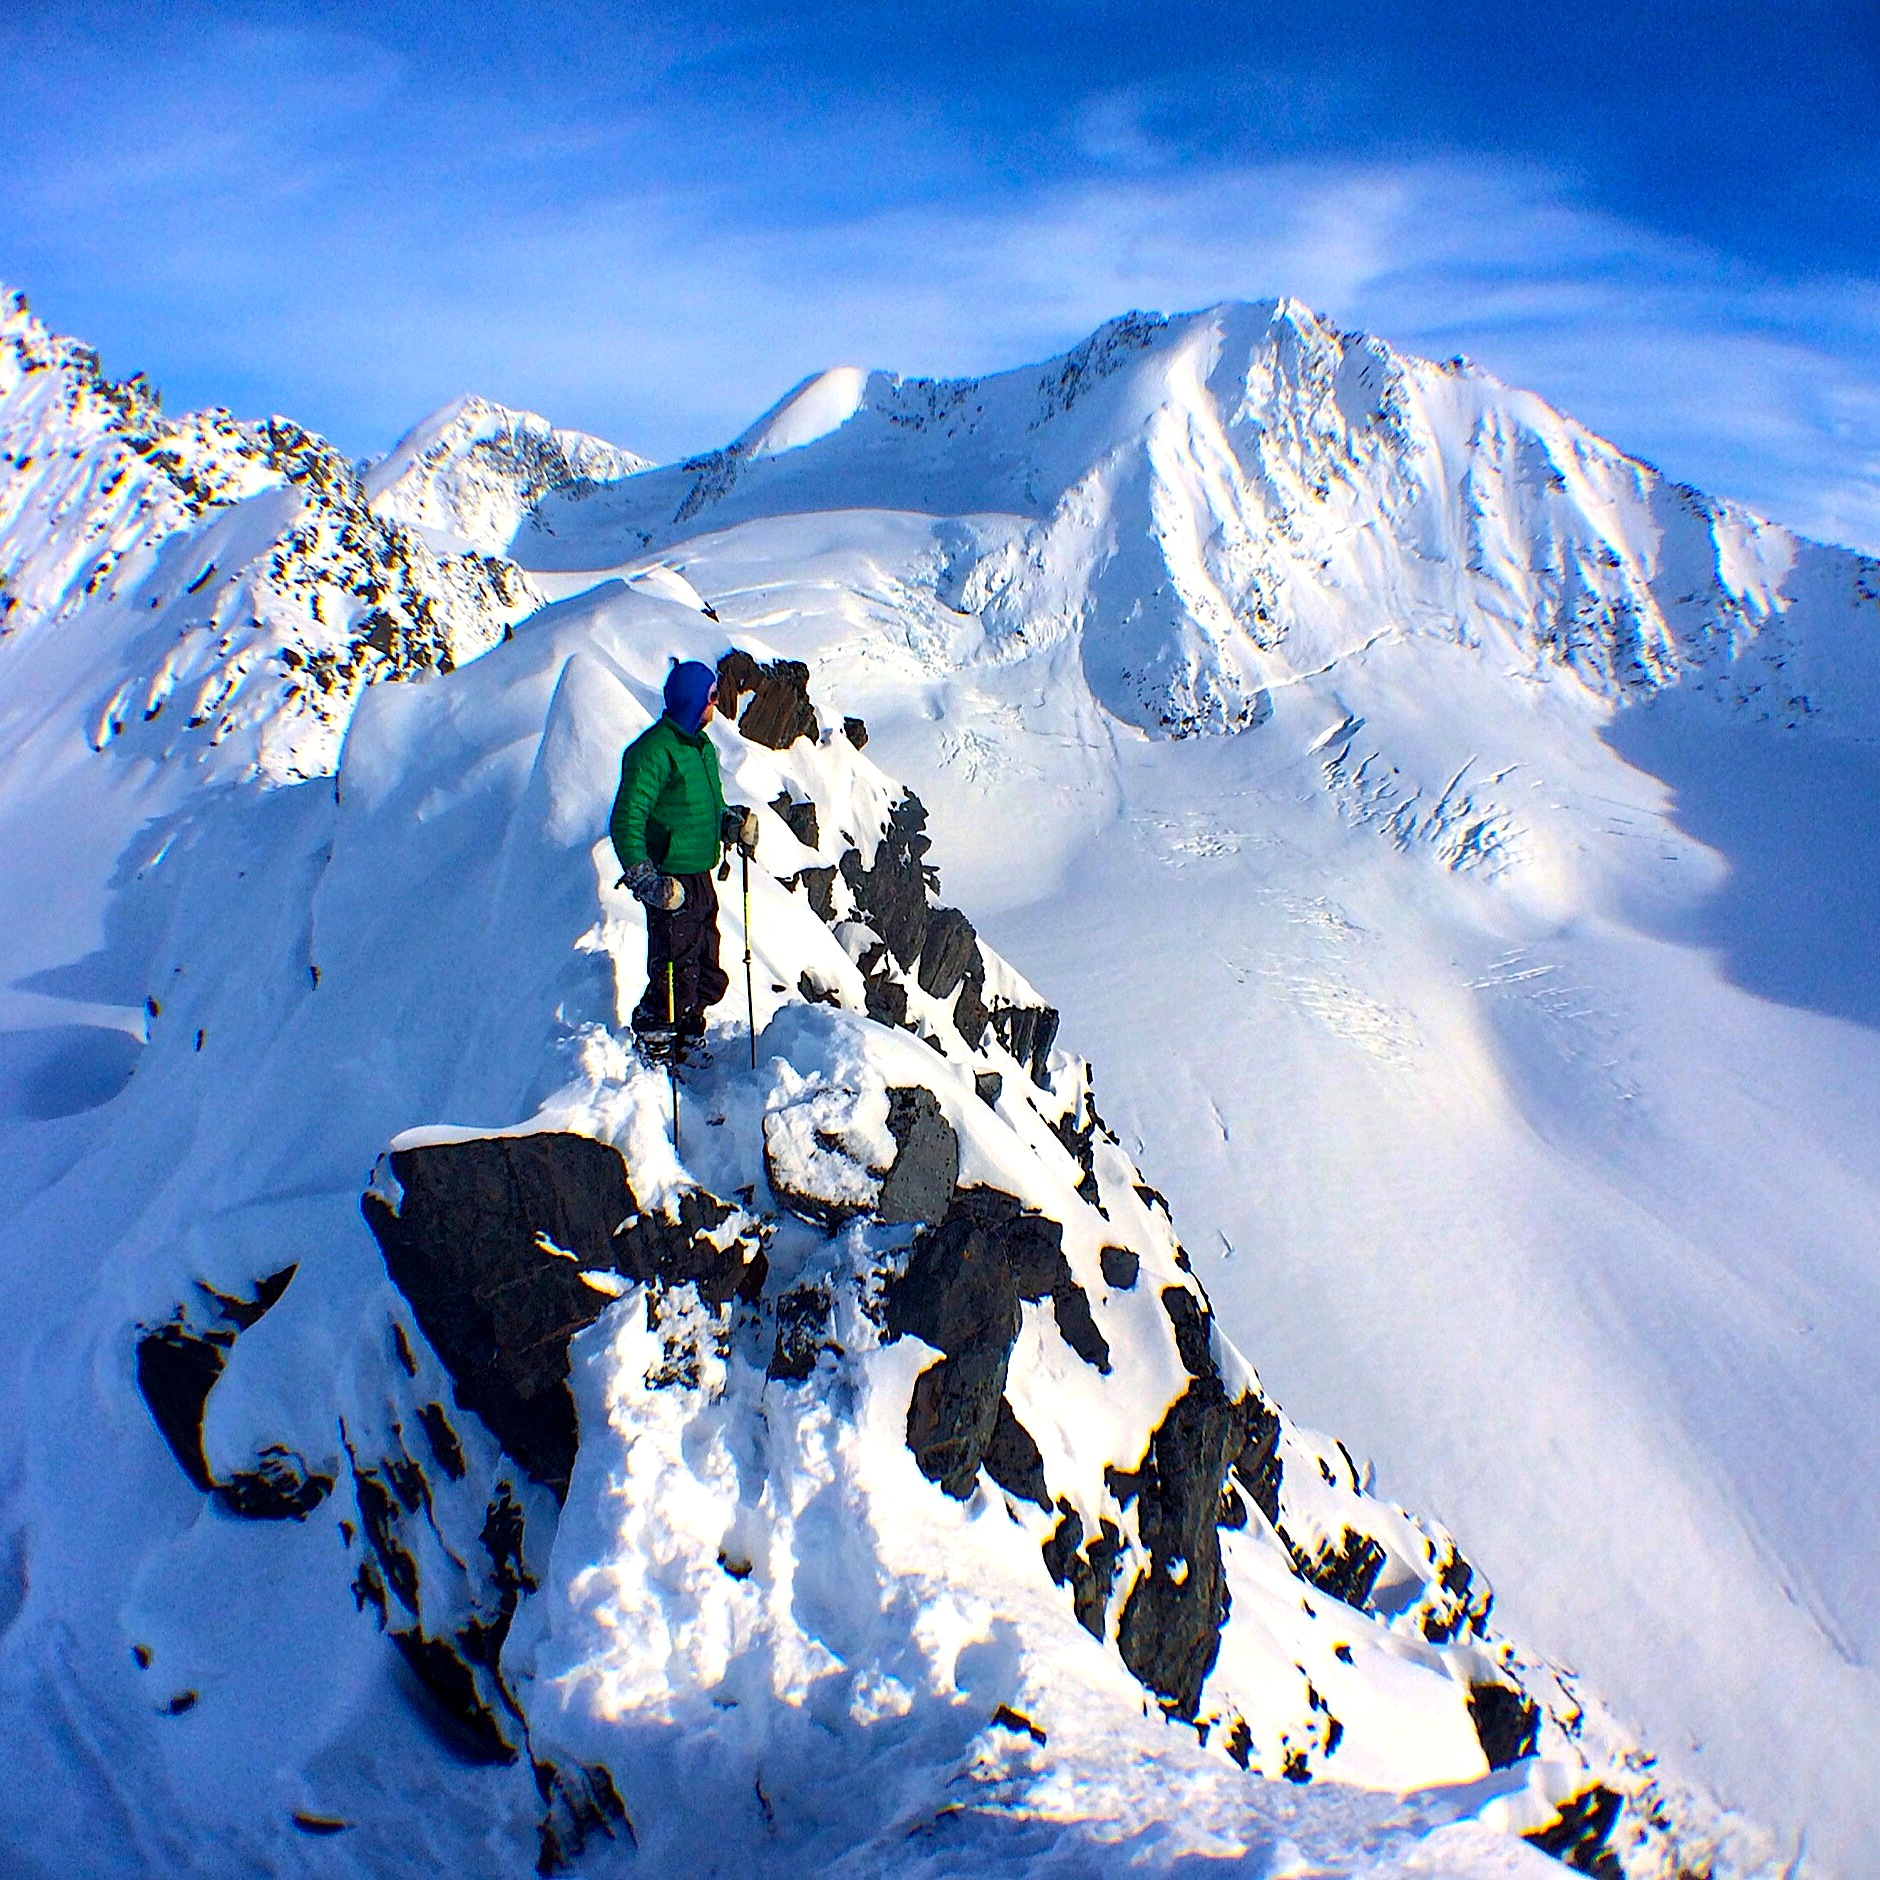 Standing at the top of Jewel Headwall. Milk Glacier in the background